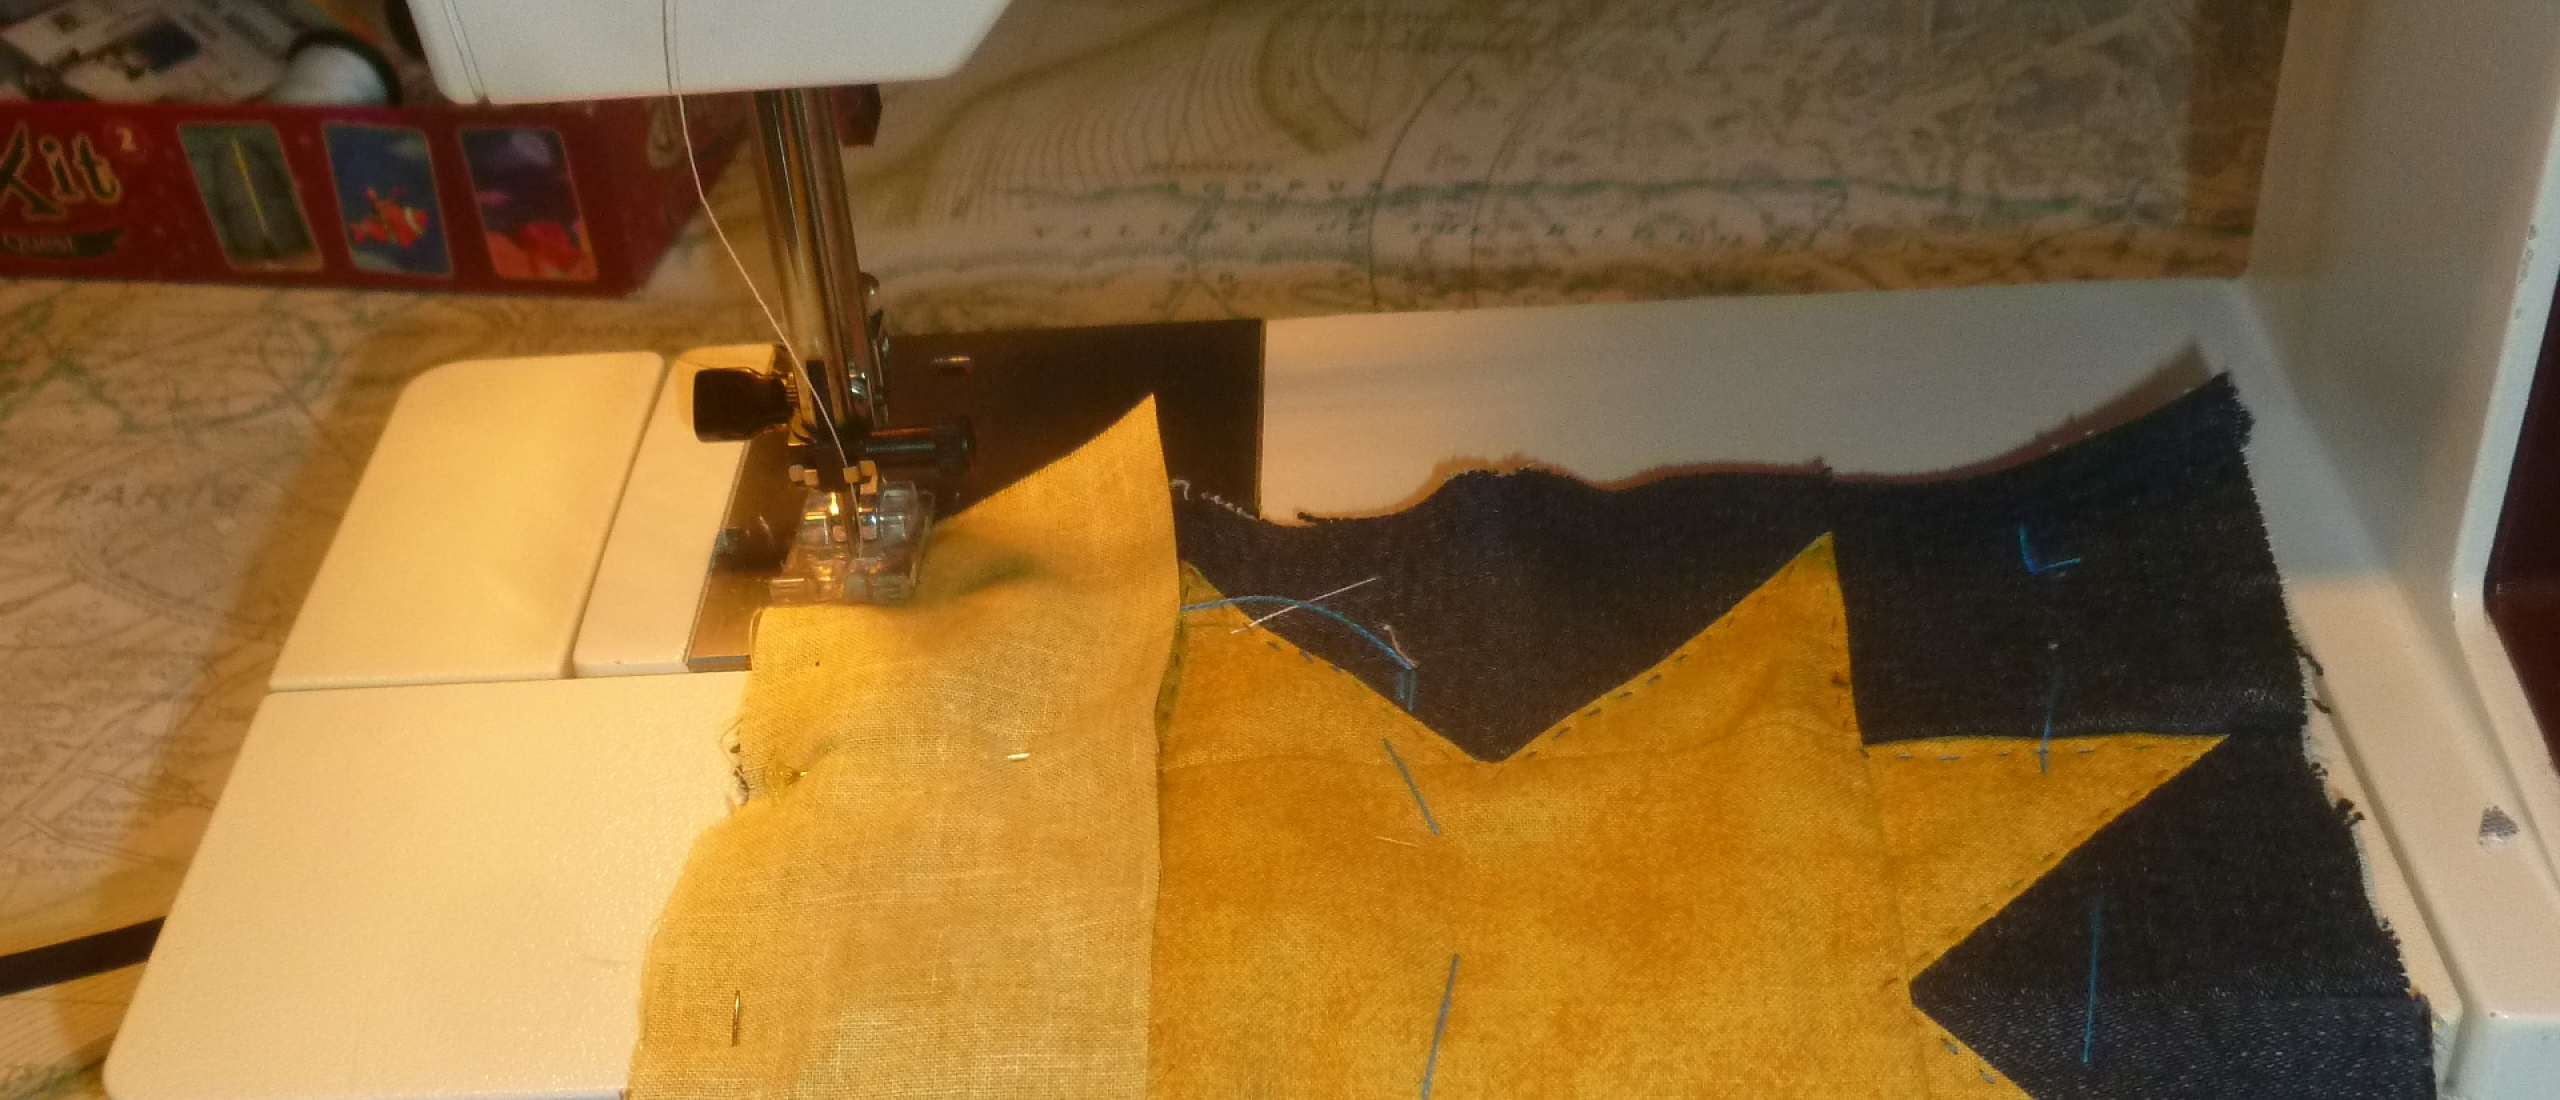 Pfaff sewing machine attaching a border to a mini quilt potholder